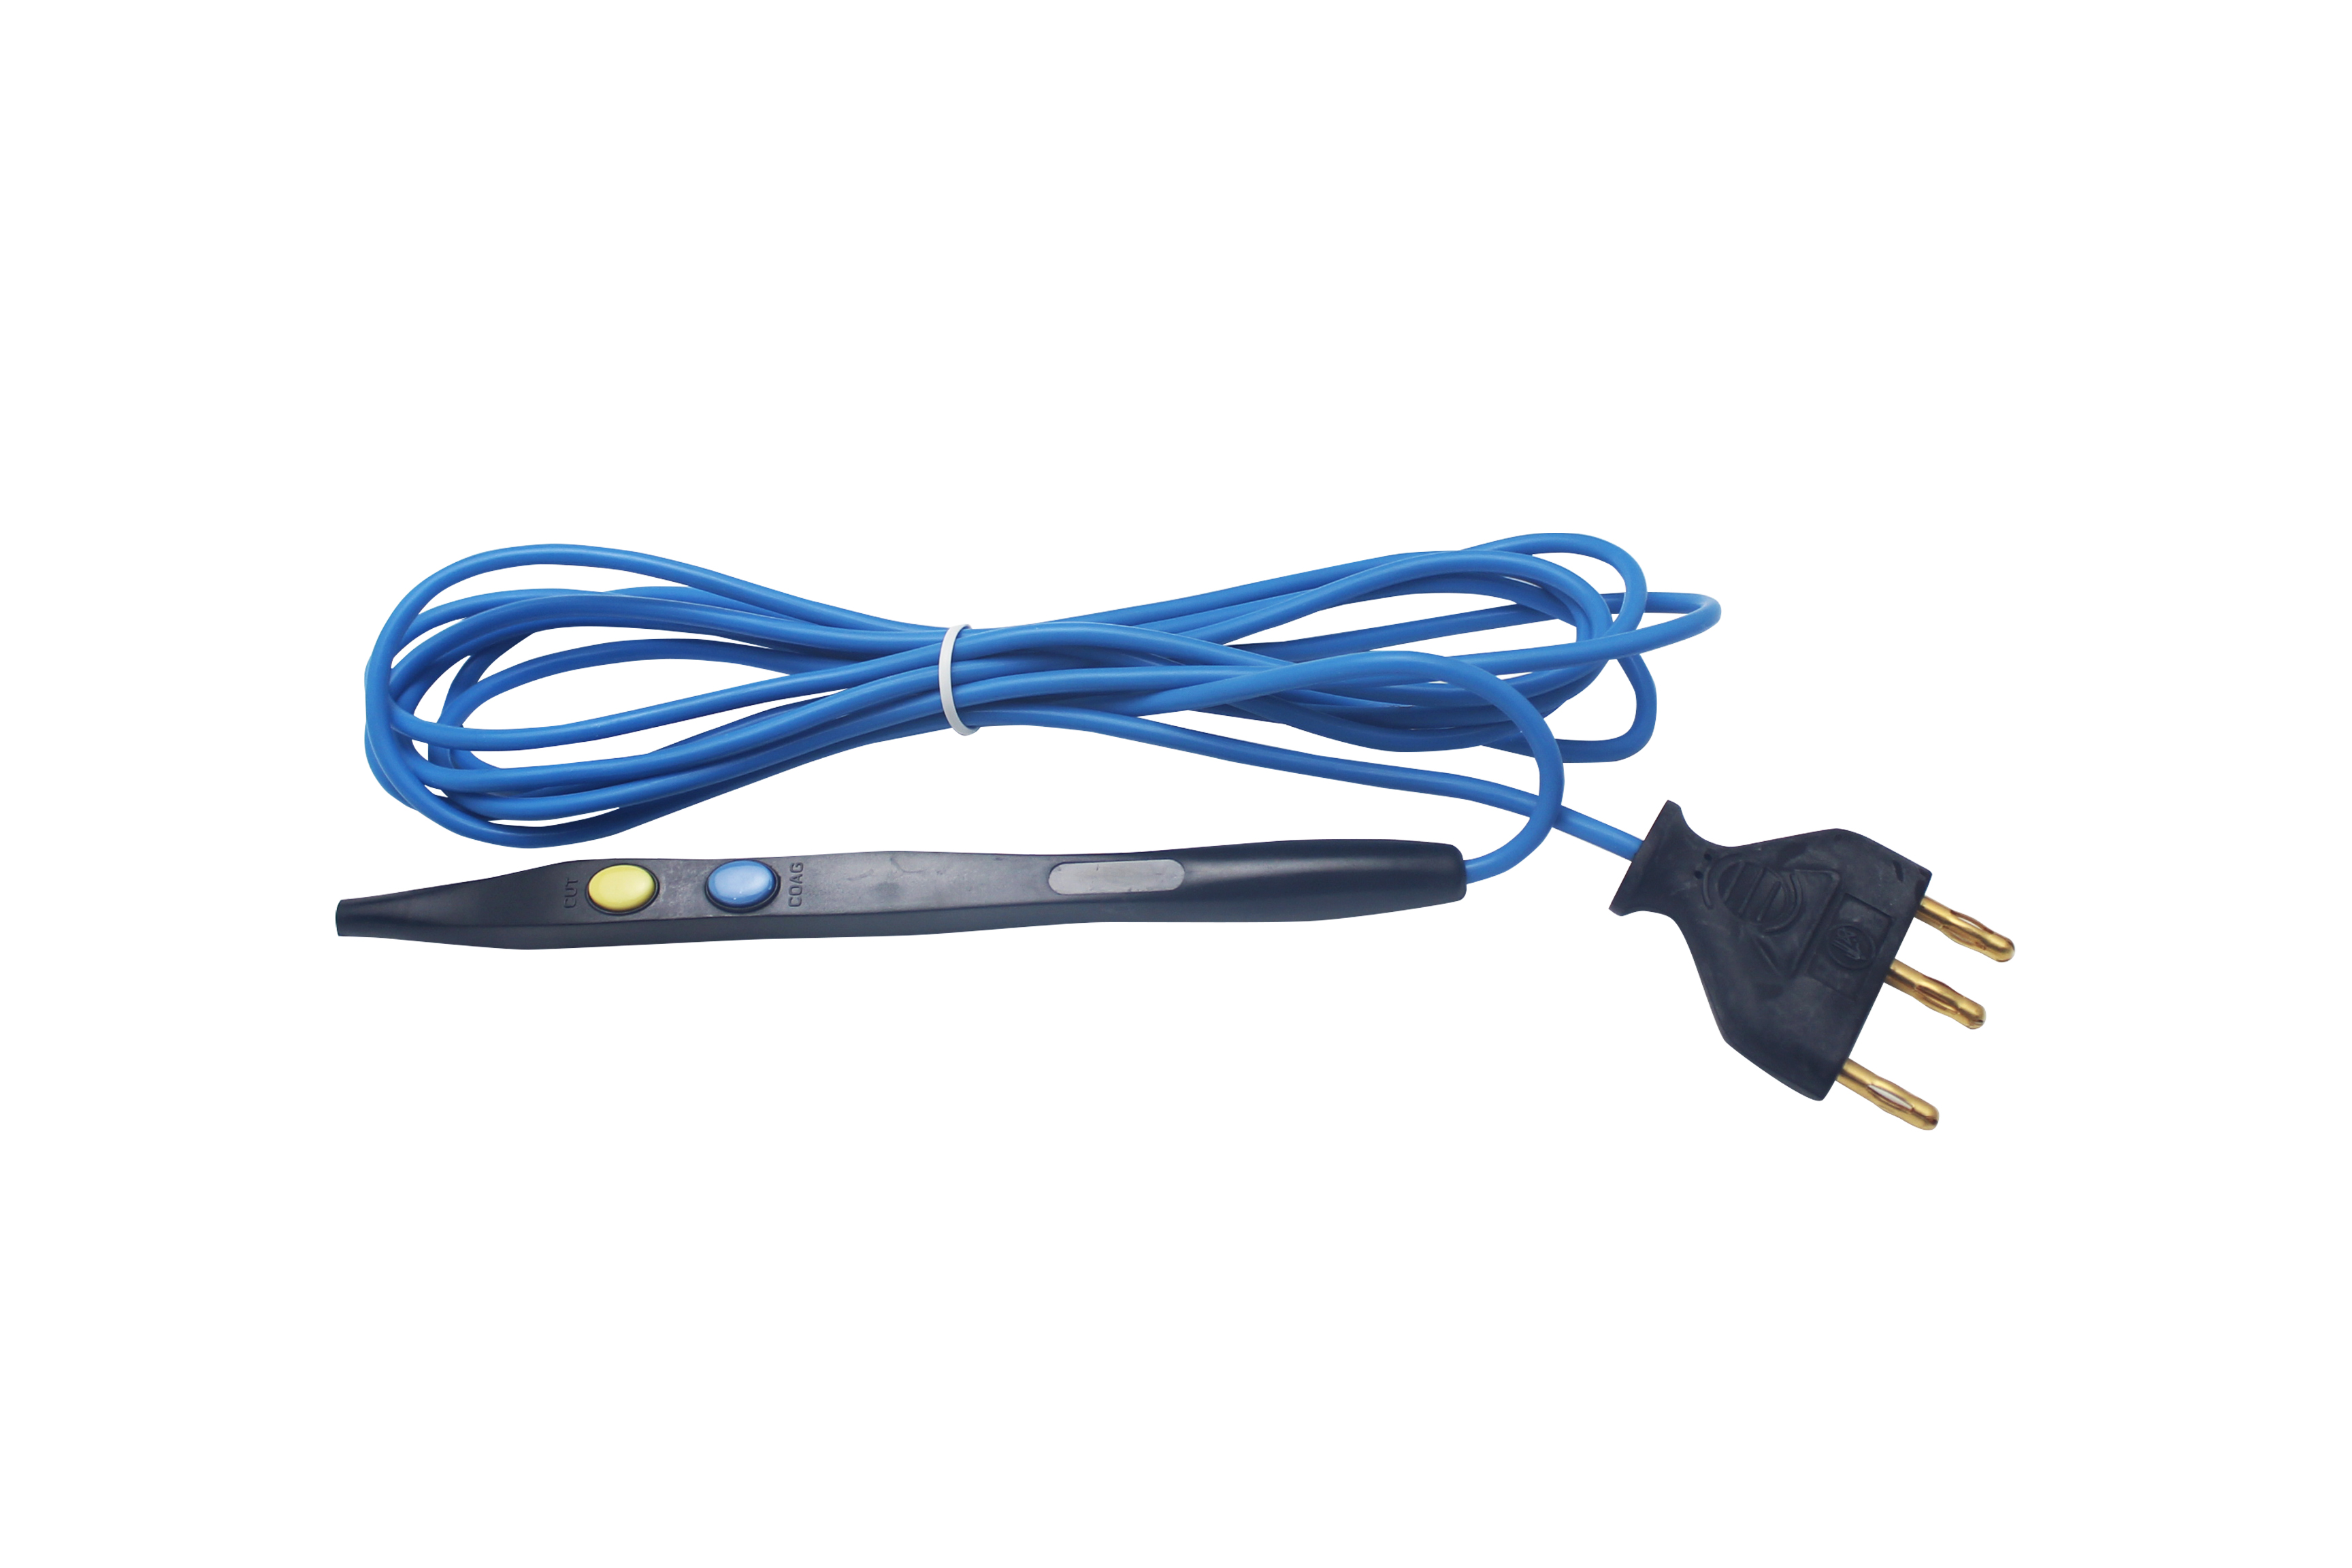 ESU Accessories 3 meter Single Use Reusable Electrosurgical Pencil CP1001B Featured Image